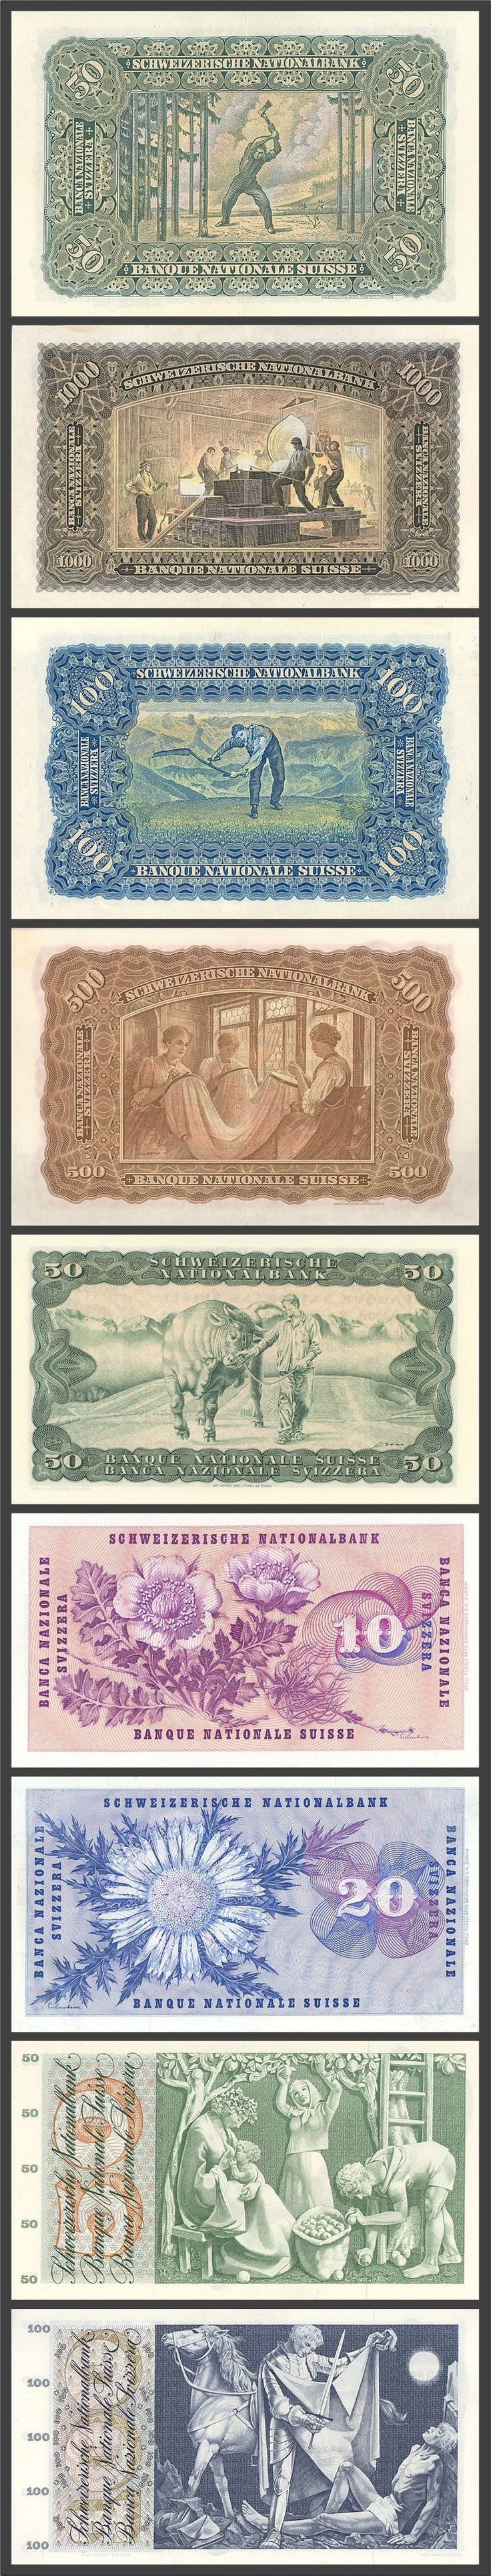 84 best switzerland images on pinterest banknote switzerland and swiss bank notes so beautiful fandeluxe Gallery